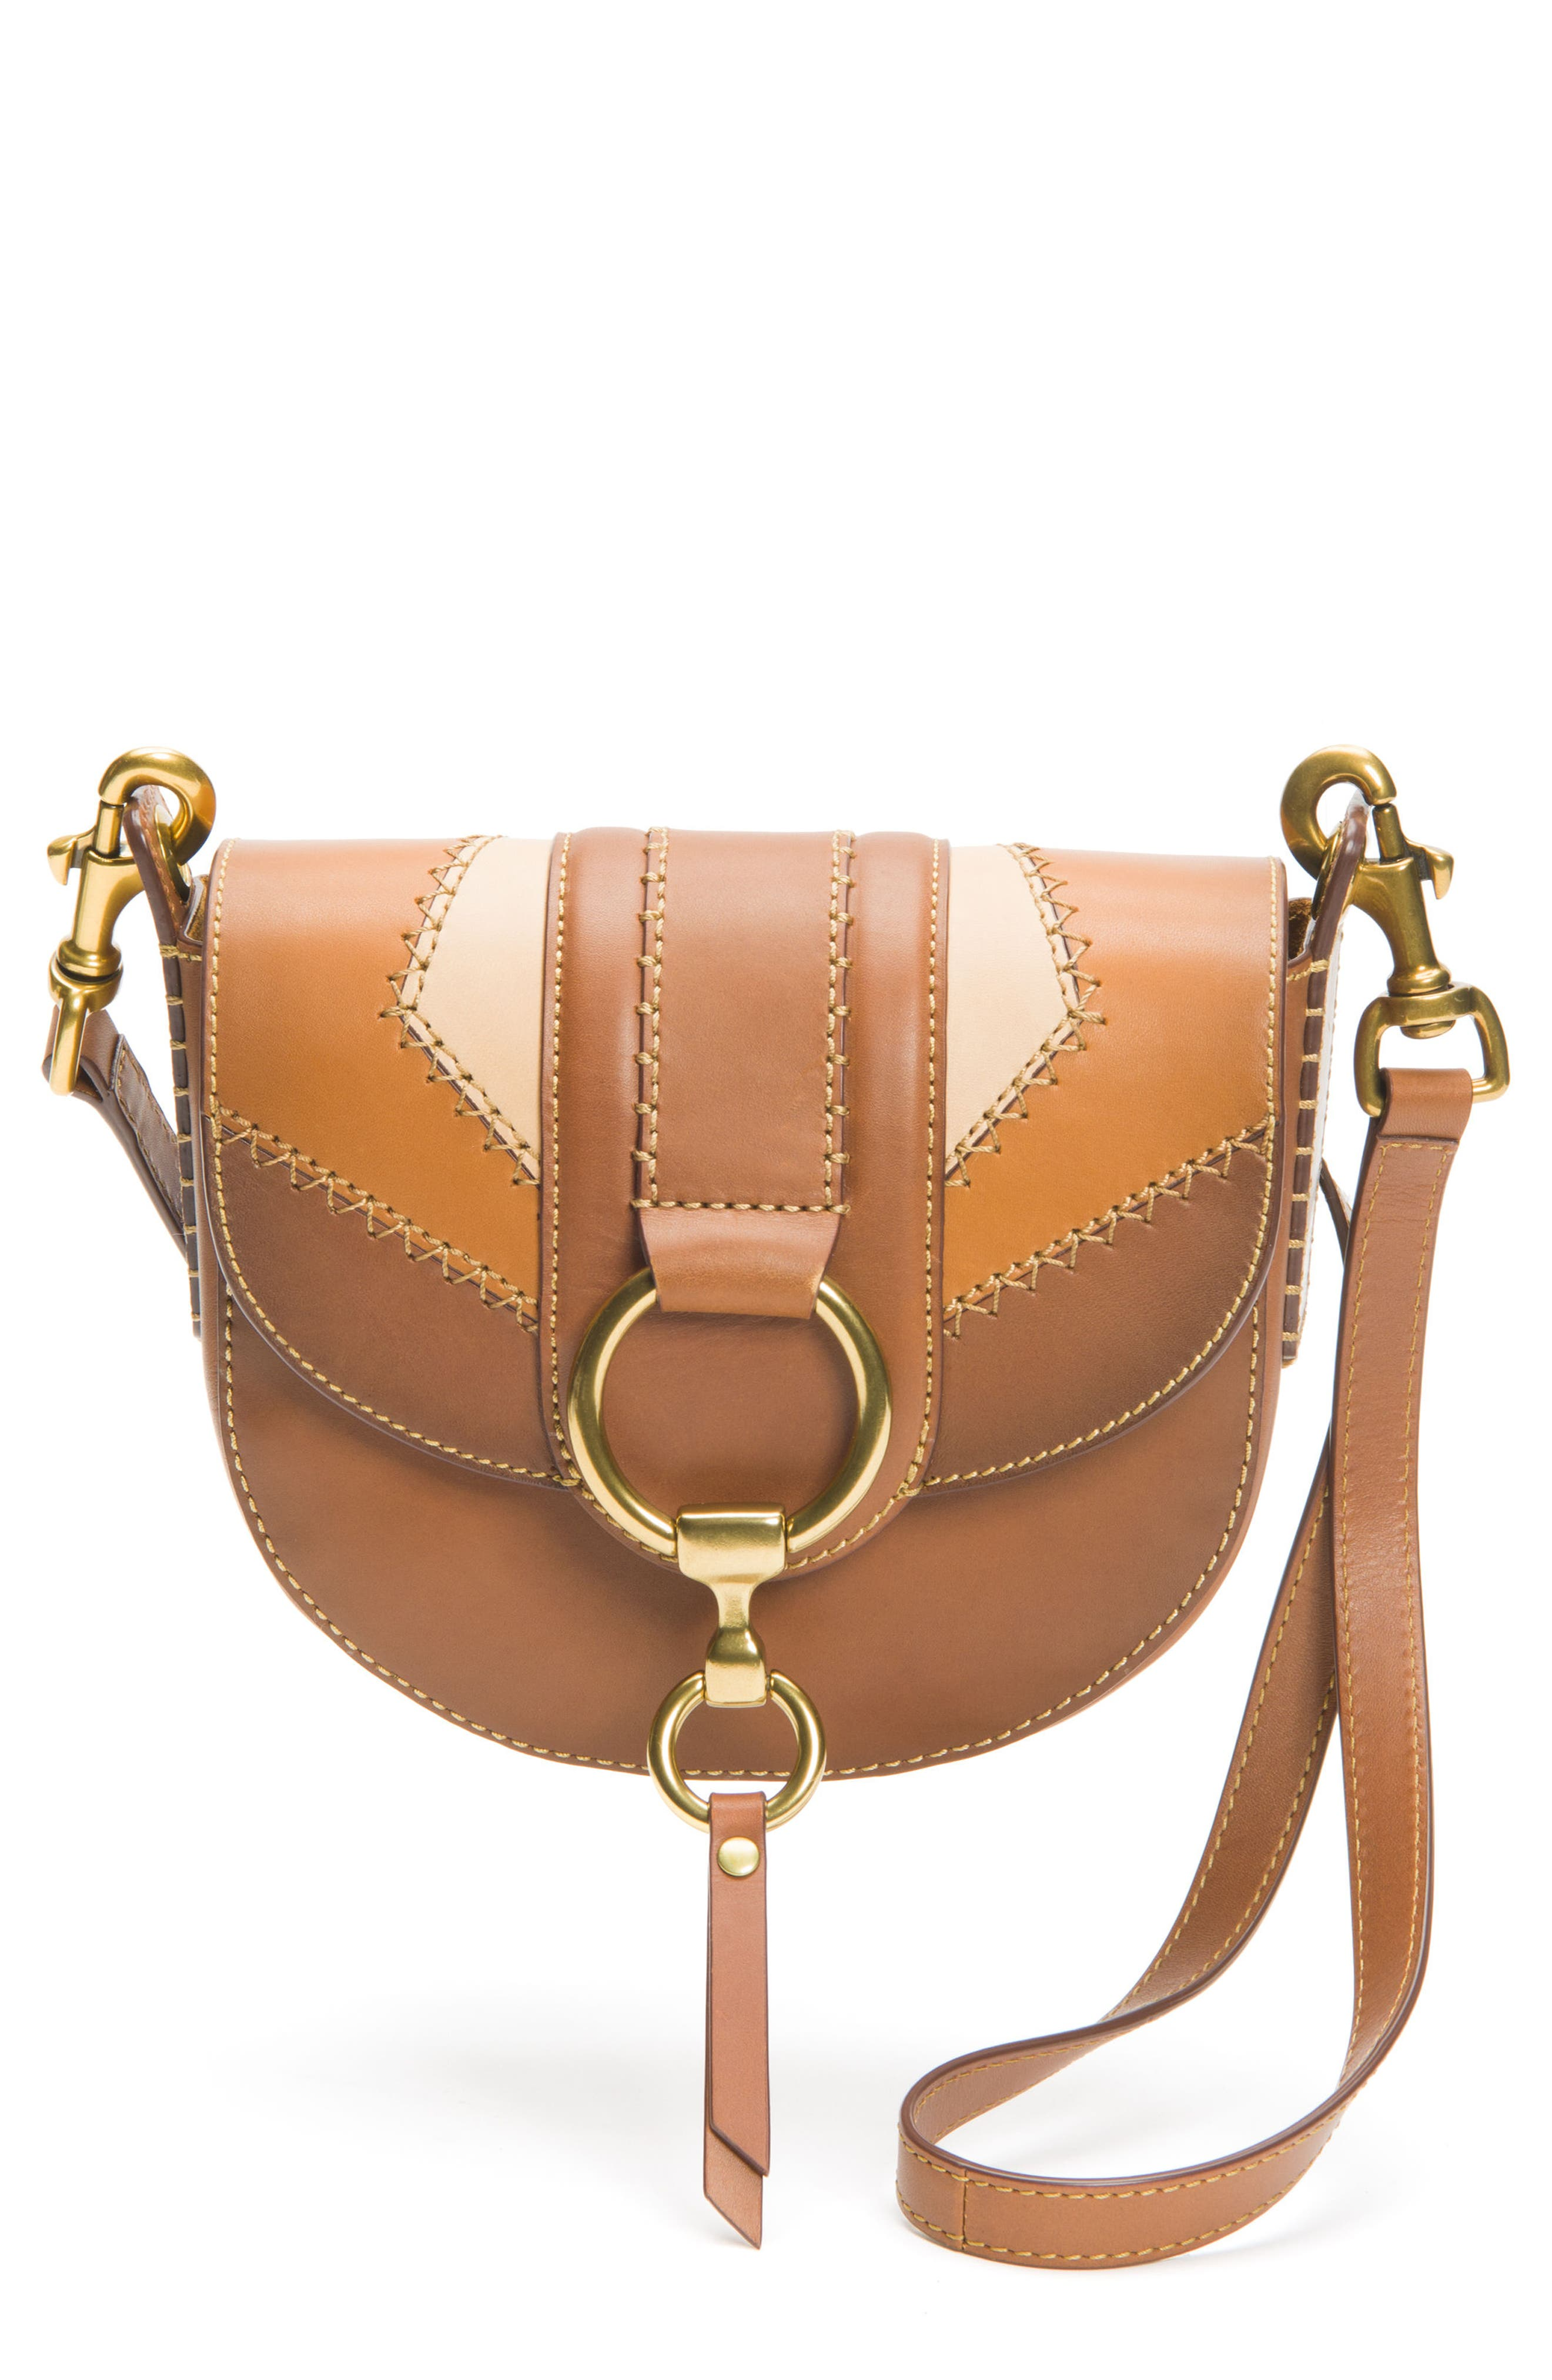 Small Ilana Colorblock Leather Saddle Bag,                             Main thumbnail 1, color,                             200